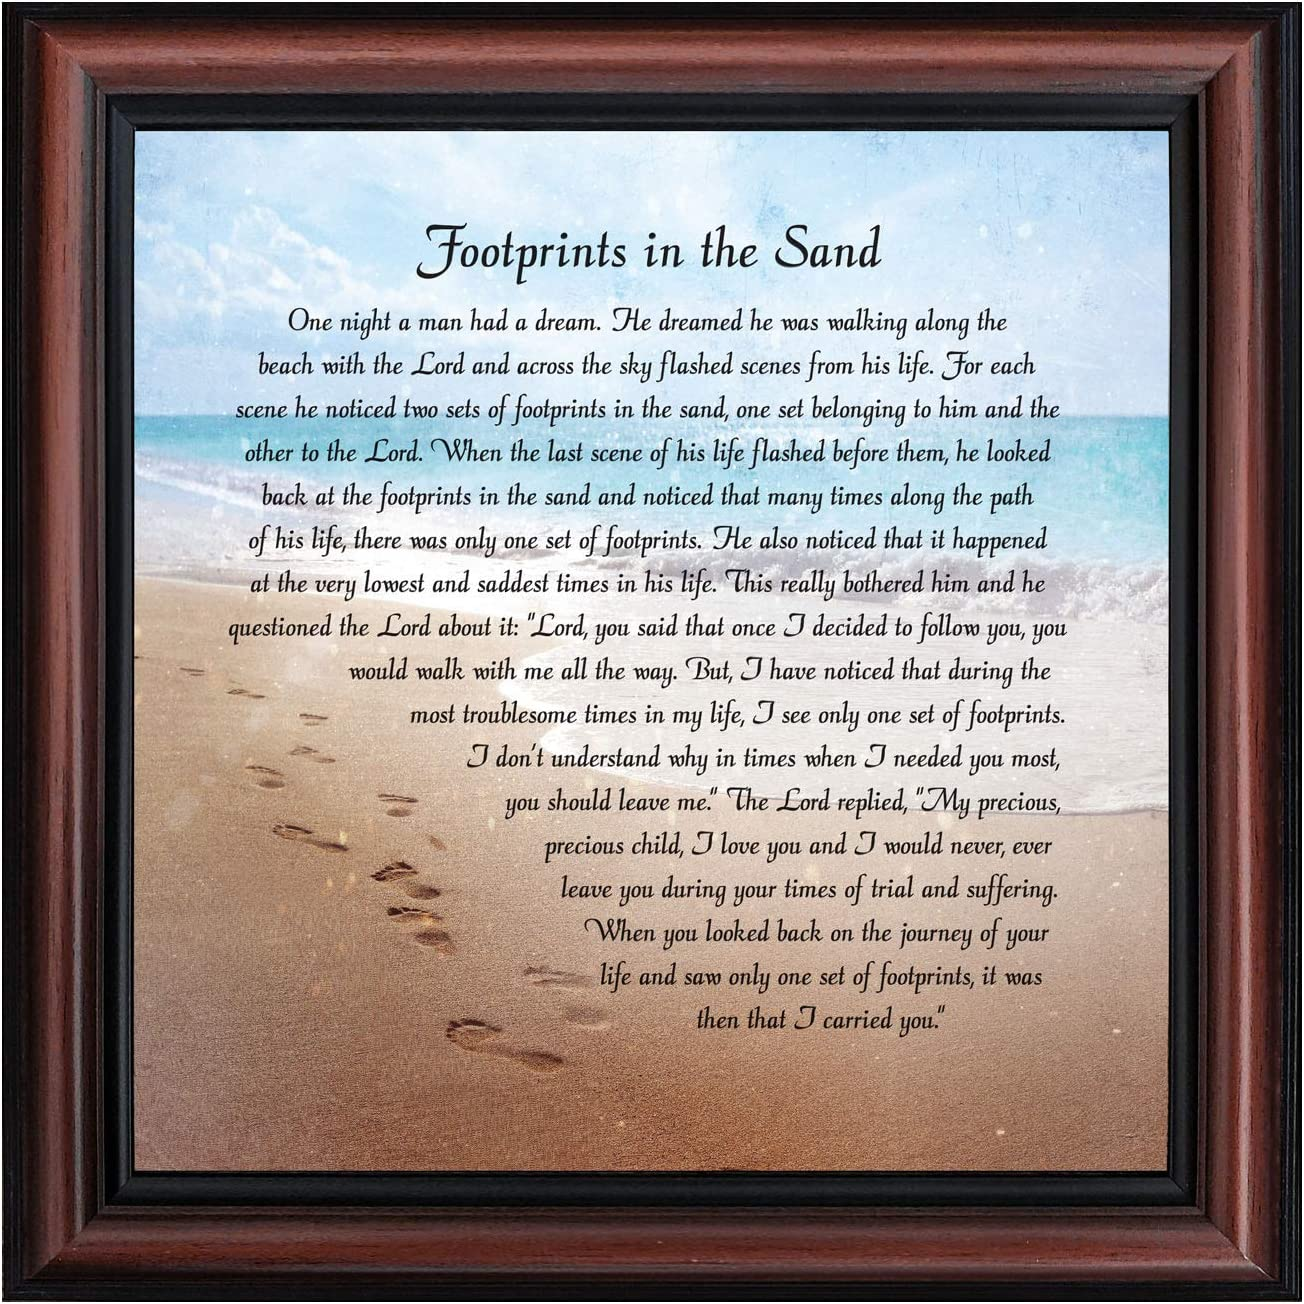 Footprints in The Sand Inspirational Wall Art, Beach Decor, Christian Gifts for Women and Men, Christian Wall Decor, Get Well Soon, Encouraging Scripture Wall Art, Framed Sympathy Gift 8639W